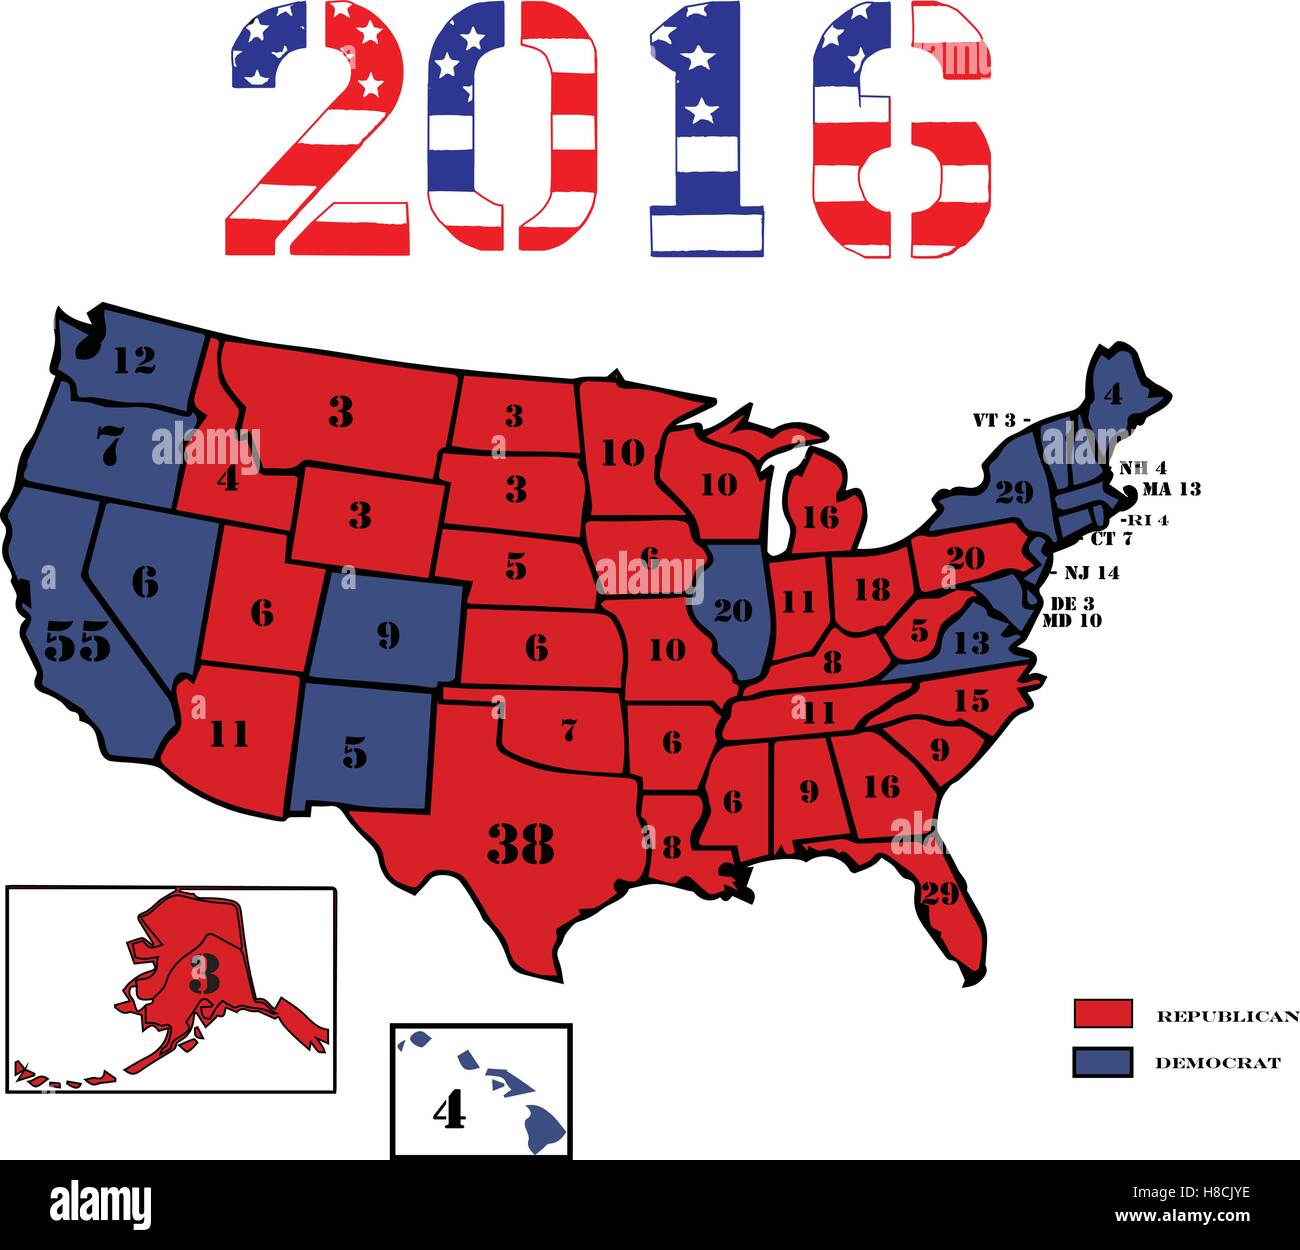 Us Map Democrat Republican States 2016.50 United States Colored In Republican Red Democrat Blue And Stock